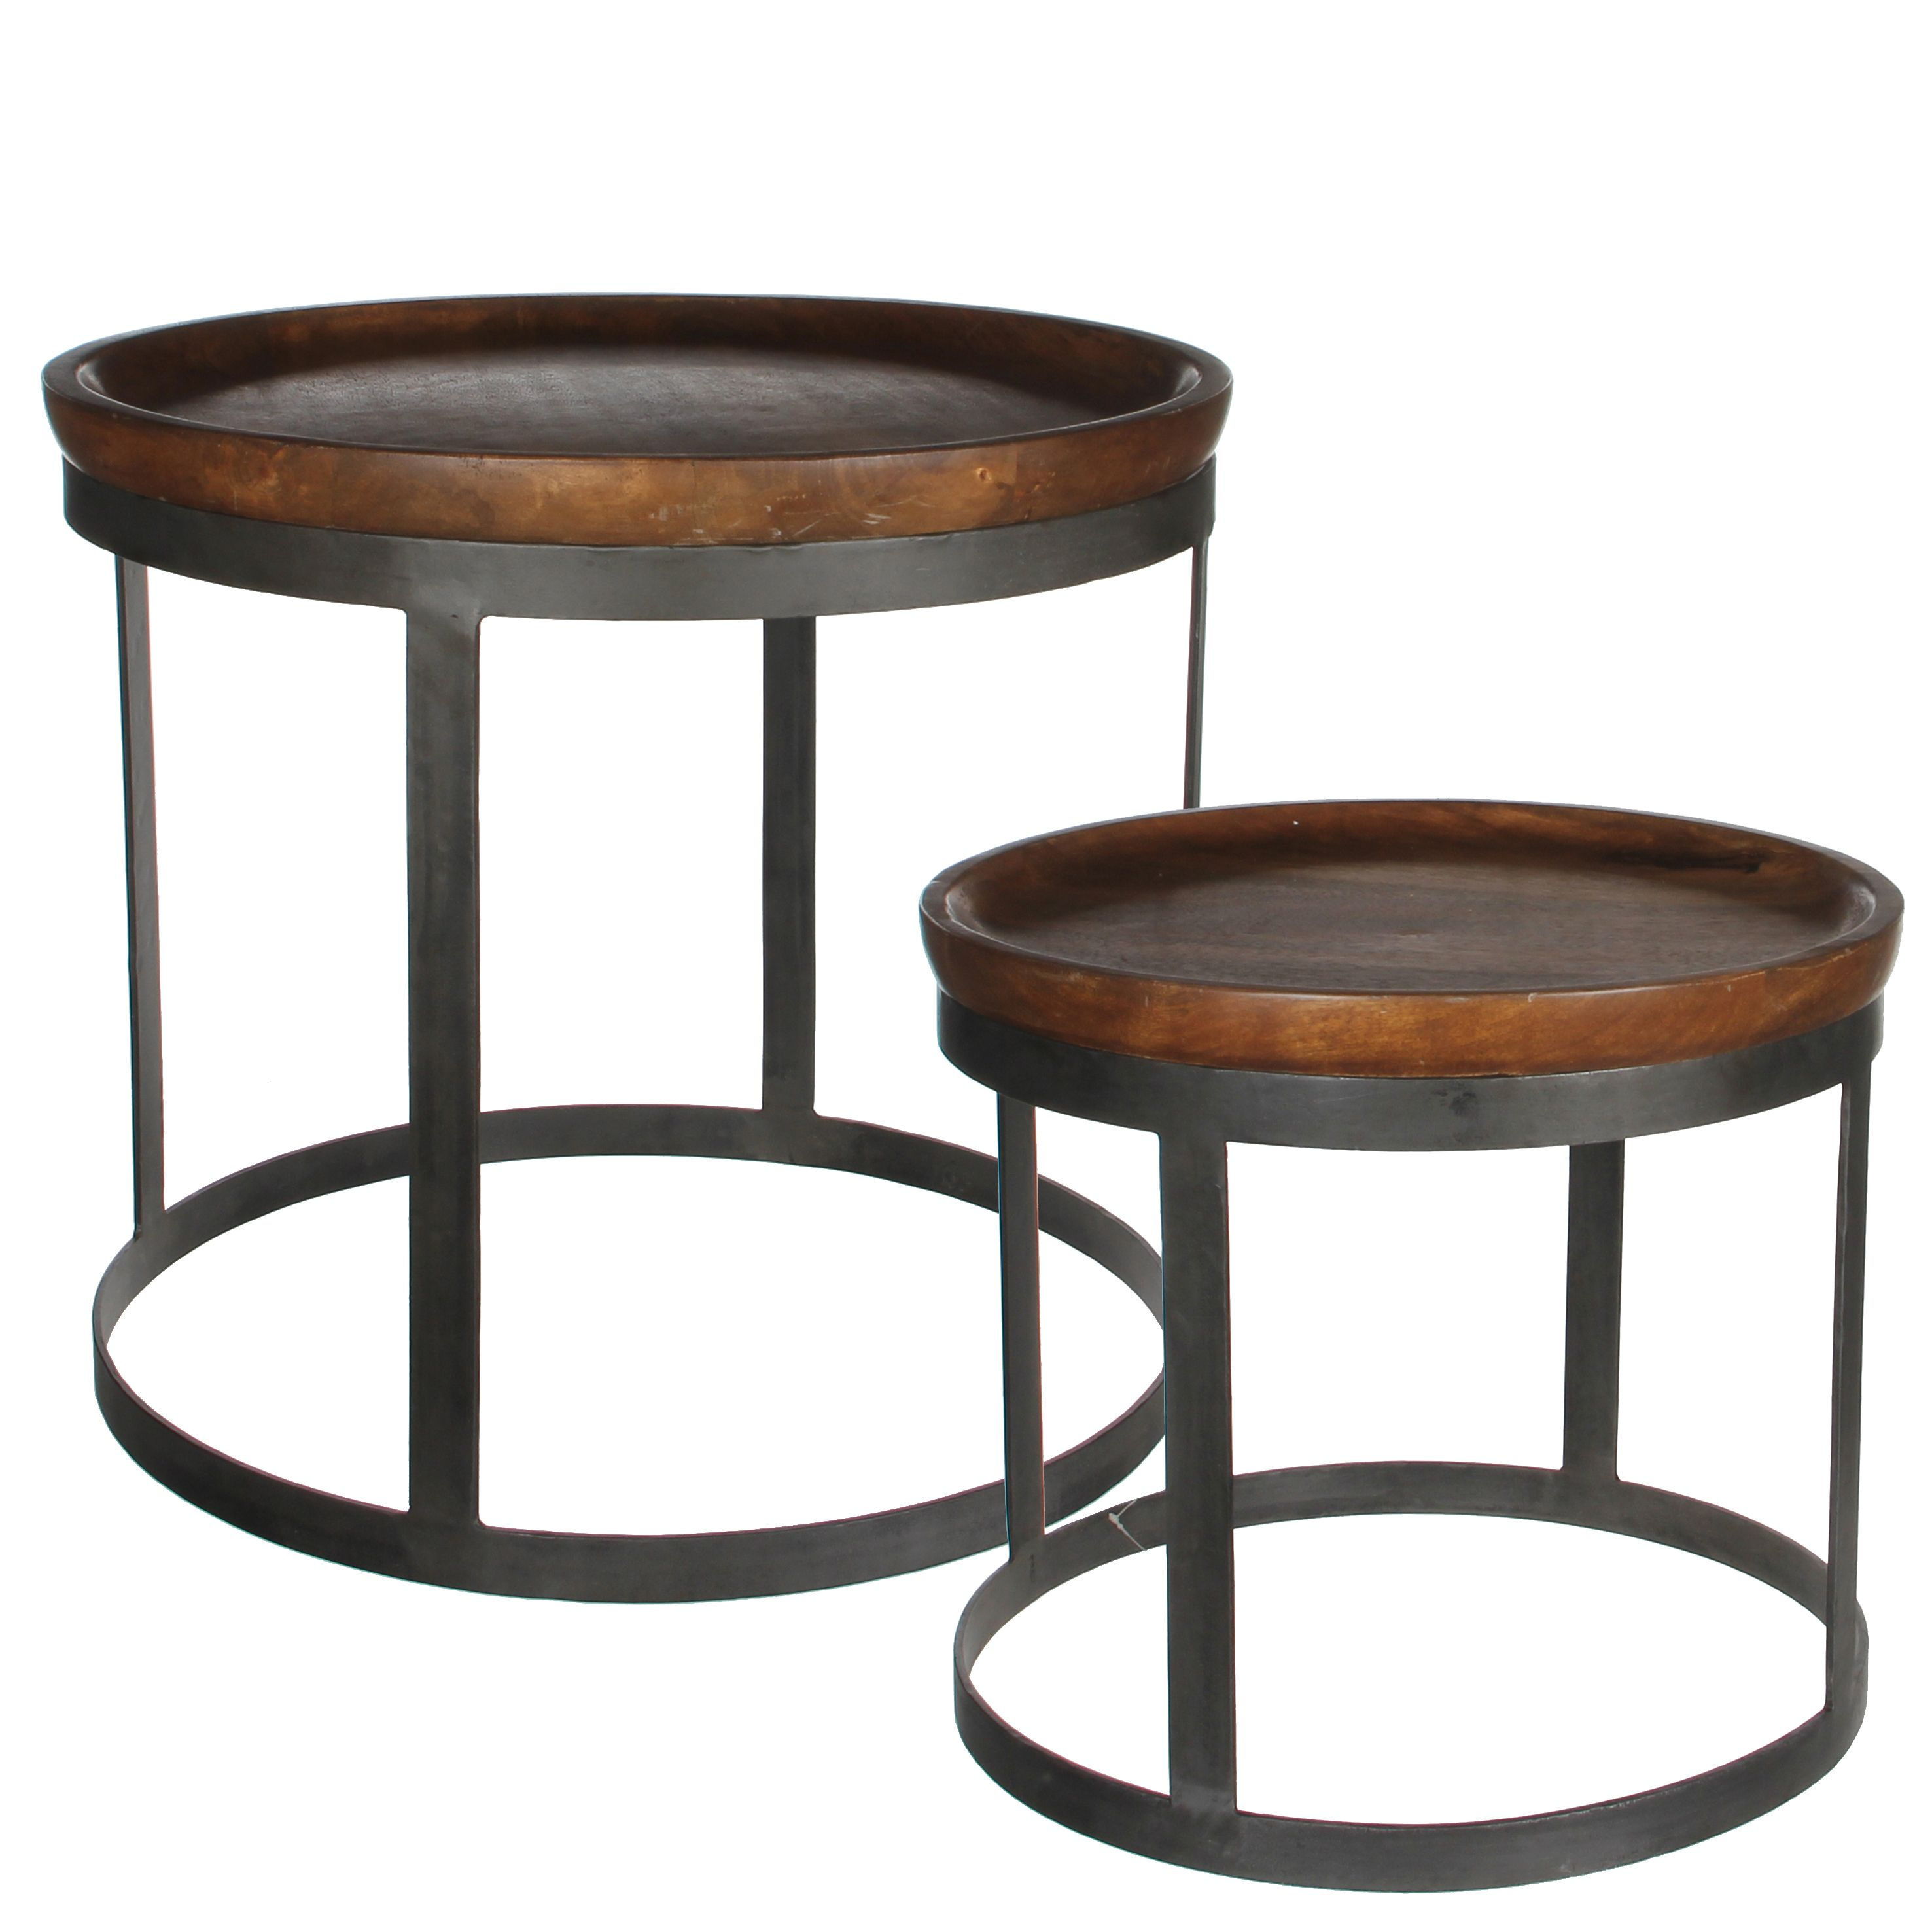 Forest Gate Sage Industrial Modern Round Coffee Table Bed Bath Beyond In 2021 Round Coffee Table Modern Coffee Table Industrial Coffee Table [ 956 x 956 Pixel ]